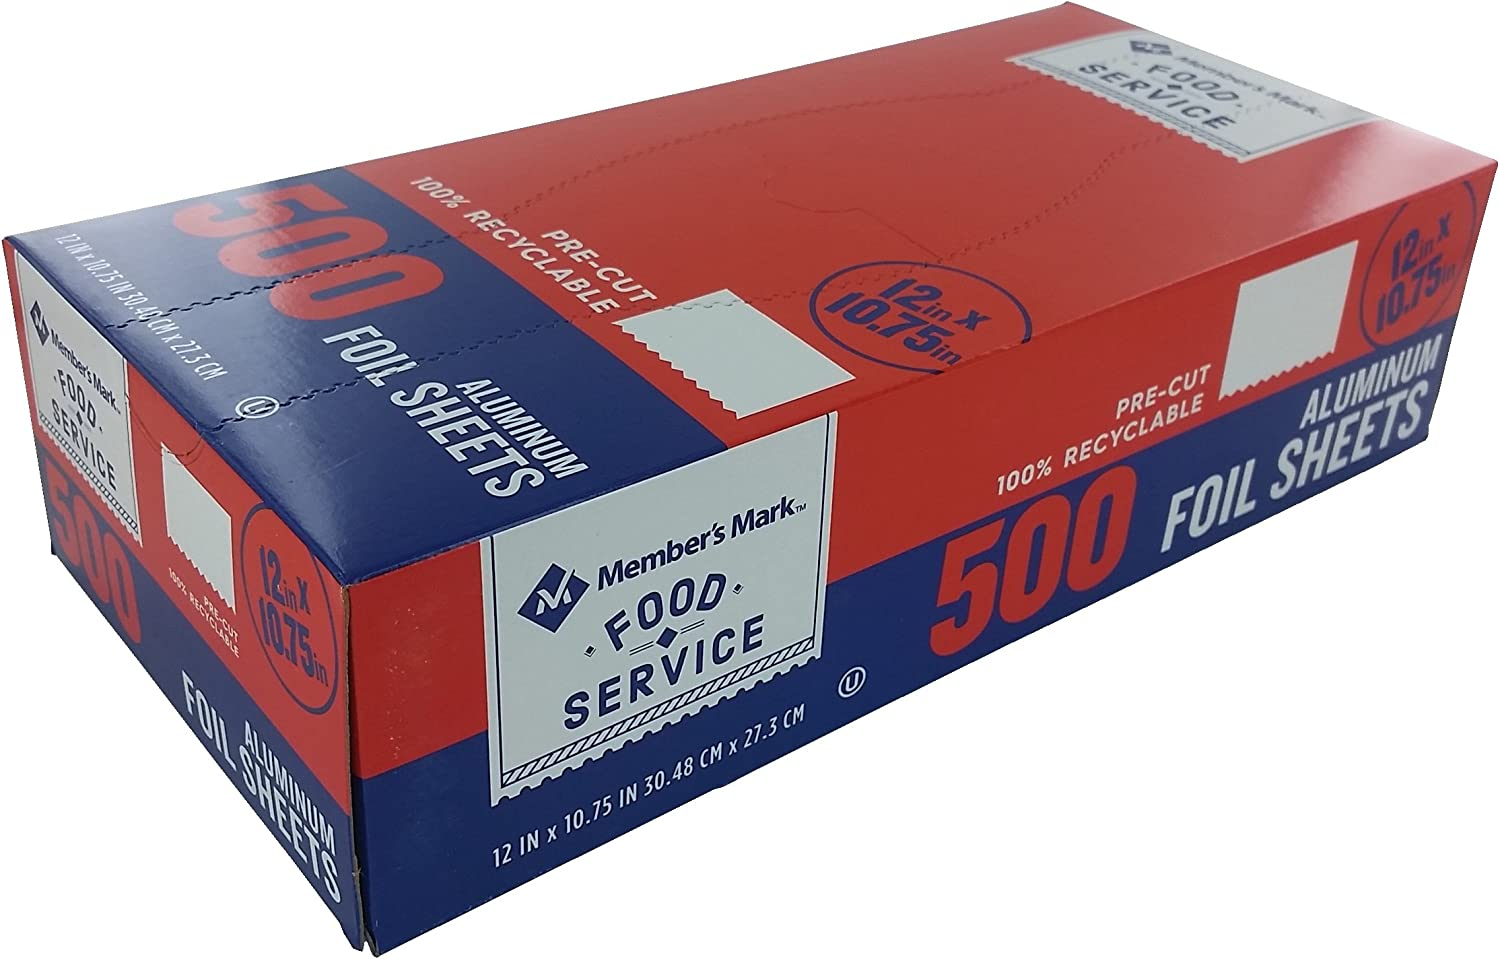 Daily Chef Foil Sheets, 12 x 10.75in. (500ct.) (pack of 2)